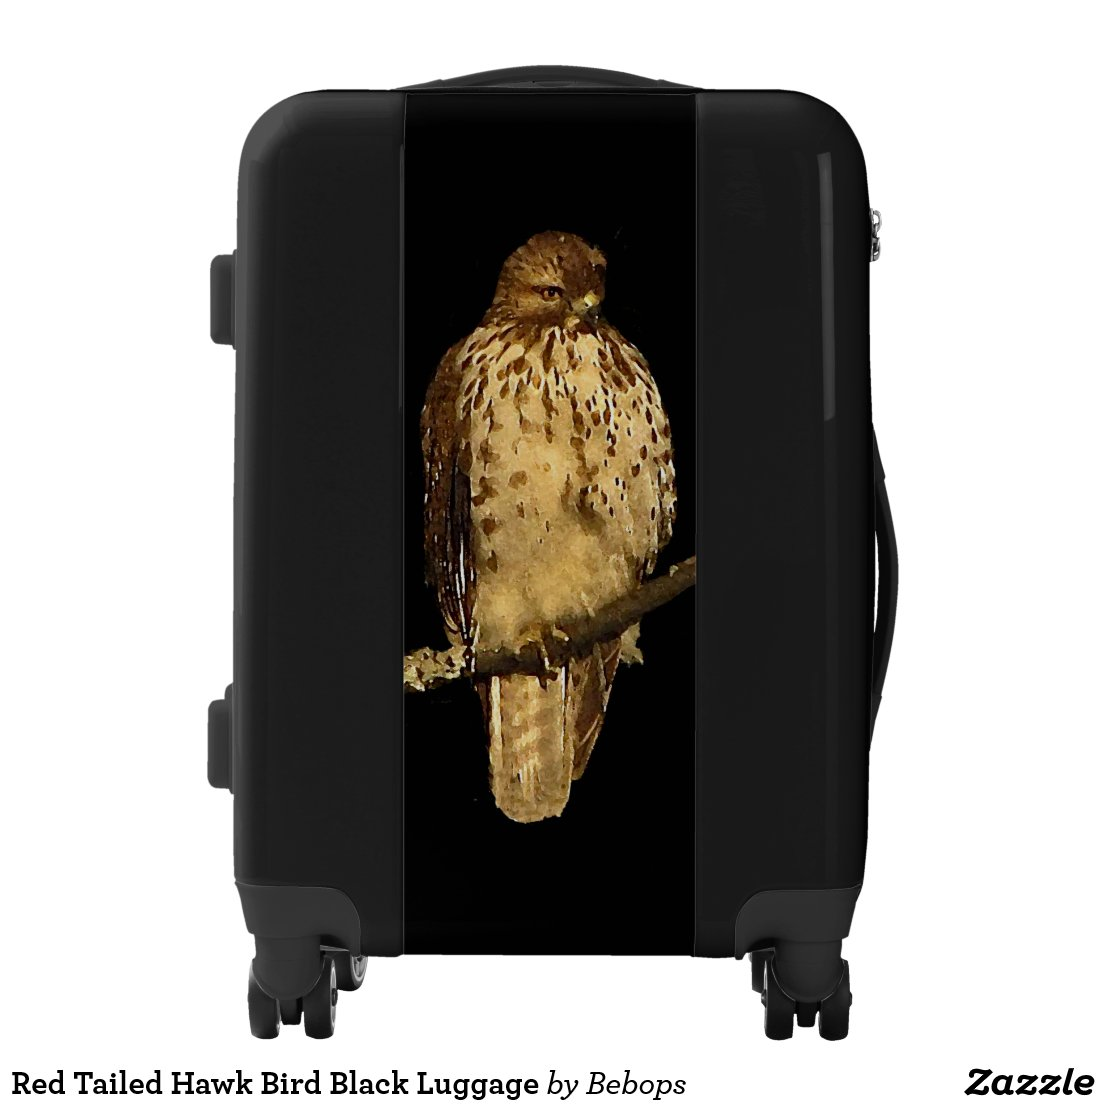 Red Tailed Hawk Bird Black Luggage